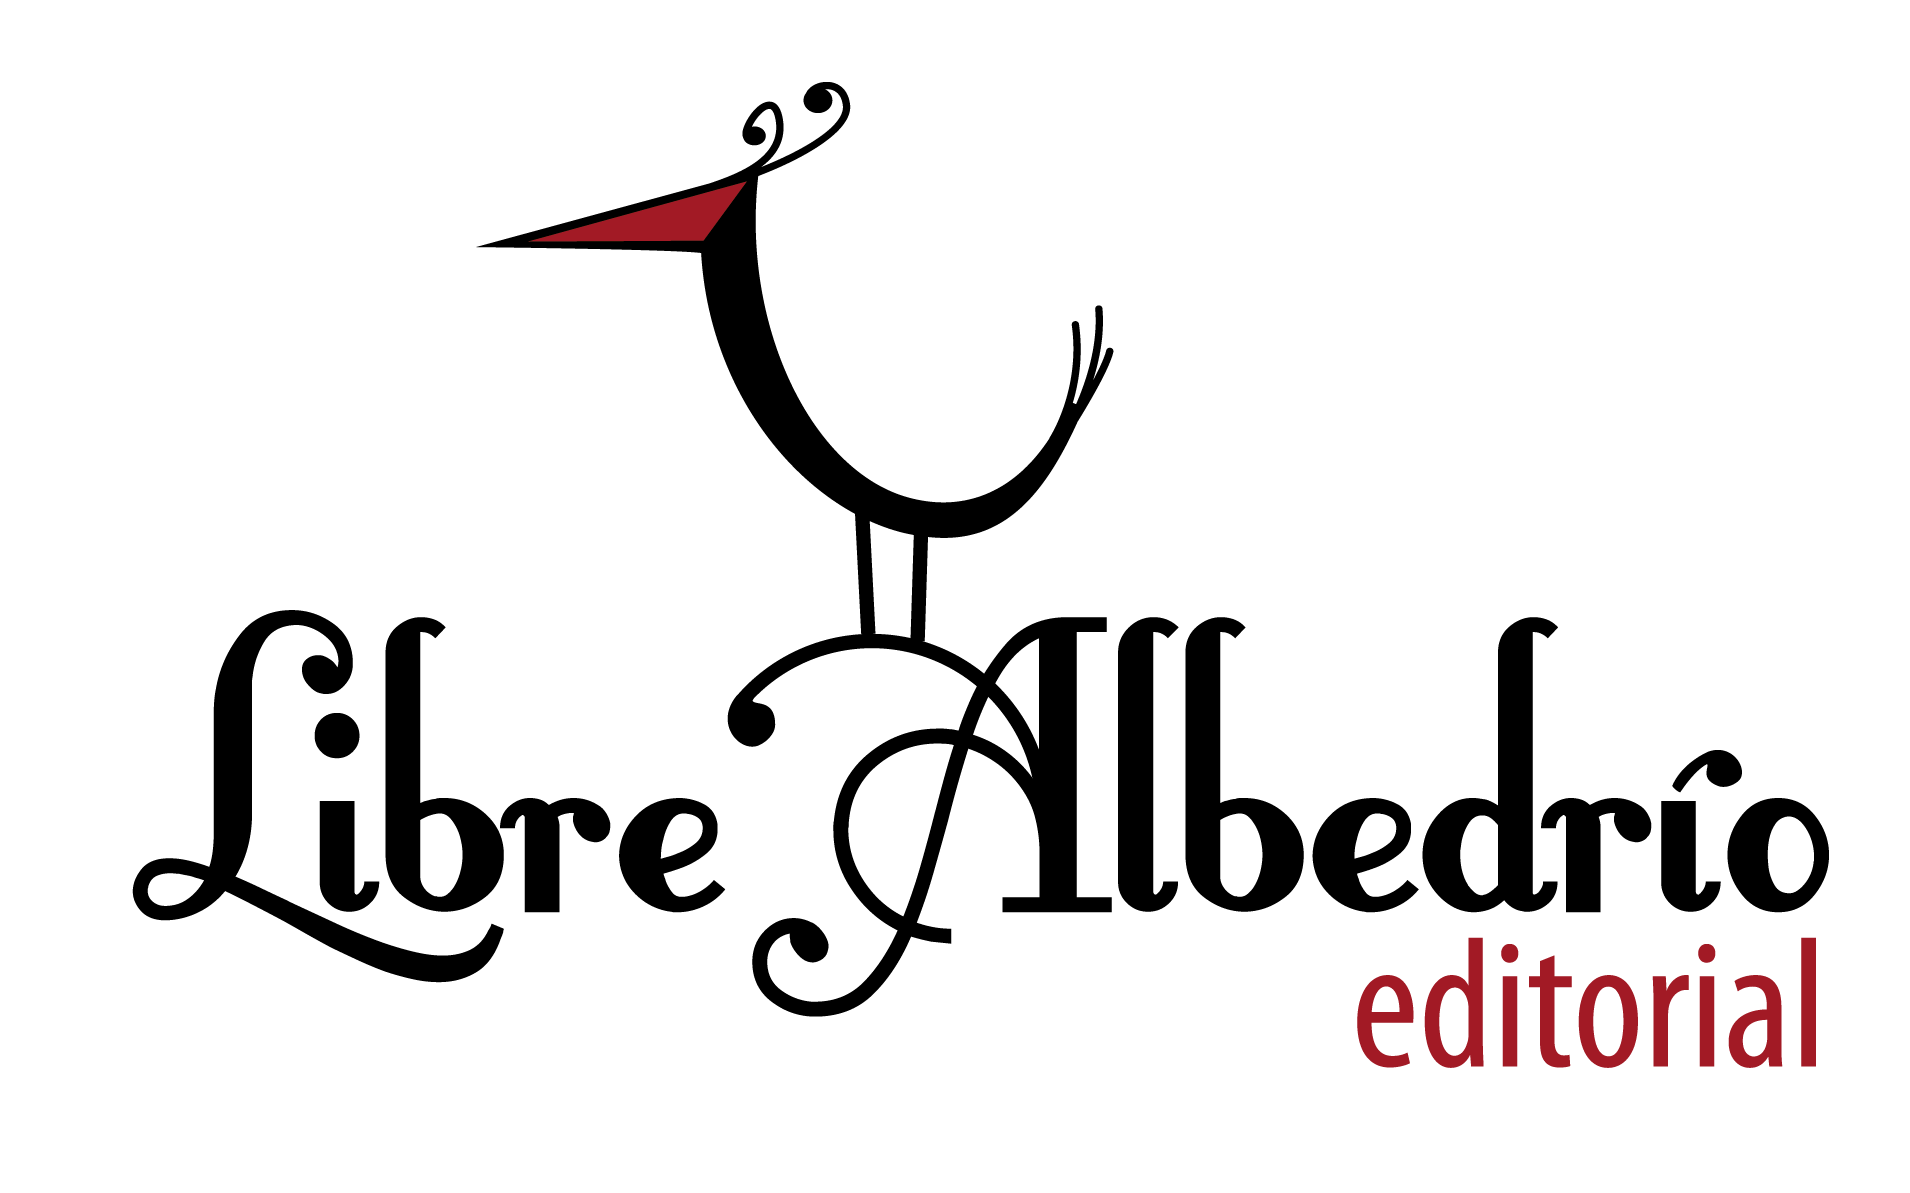 Logotipo Editorial Libre Albedrío